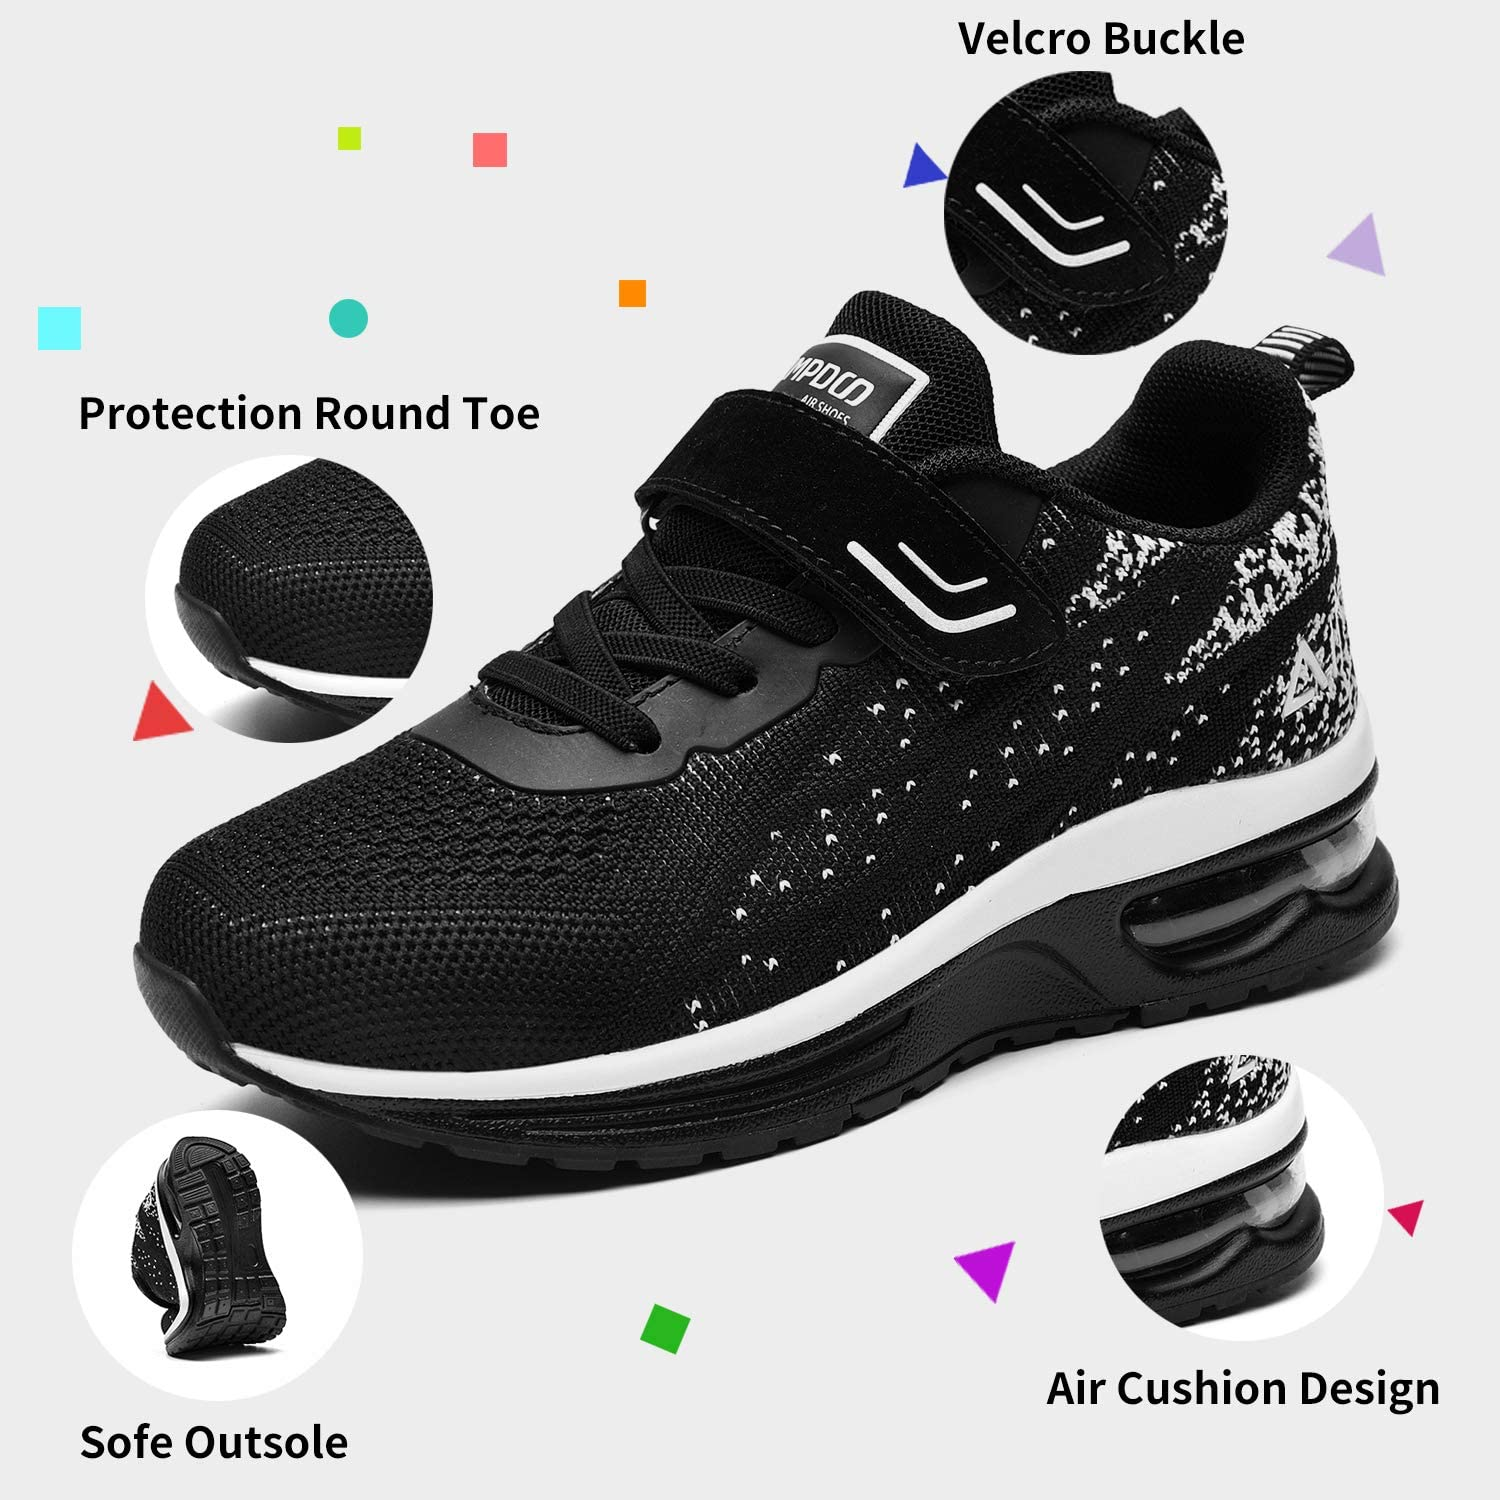 Kids Running Shoes Size 1 Boys Trainers Teenager Sneakers Unisex Outdoor  Jogging Sports Shoes Lightweight Comfortable Junior Walking Shoes  Breathable Fashion Athletic Gymnastics Fitness Shoes Blue Shoes Sports &  Outdoor Shoes